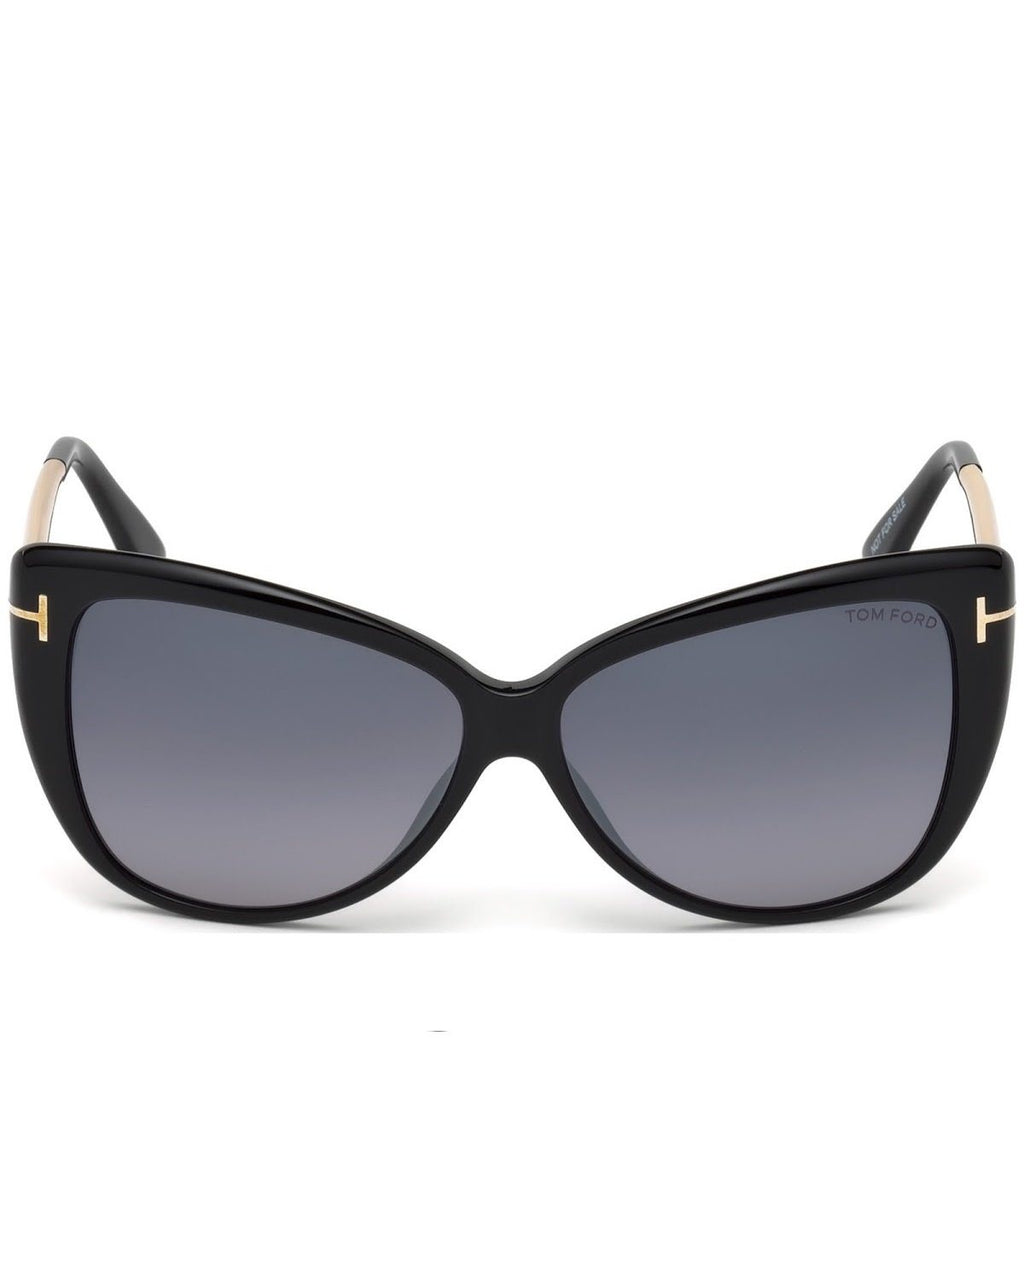 Tom Ford FT 0512 Women's Sunglasses